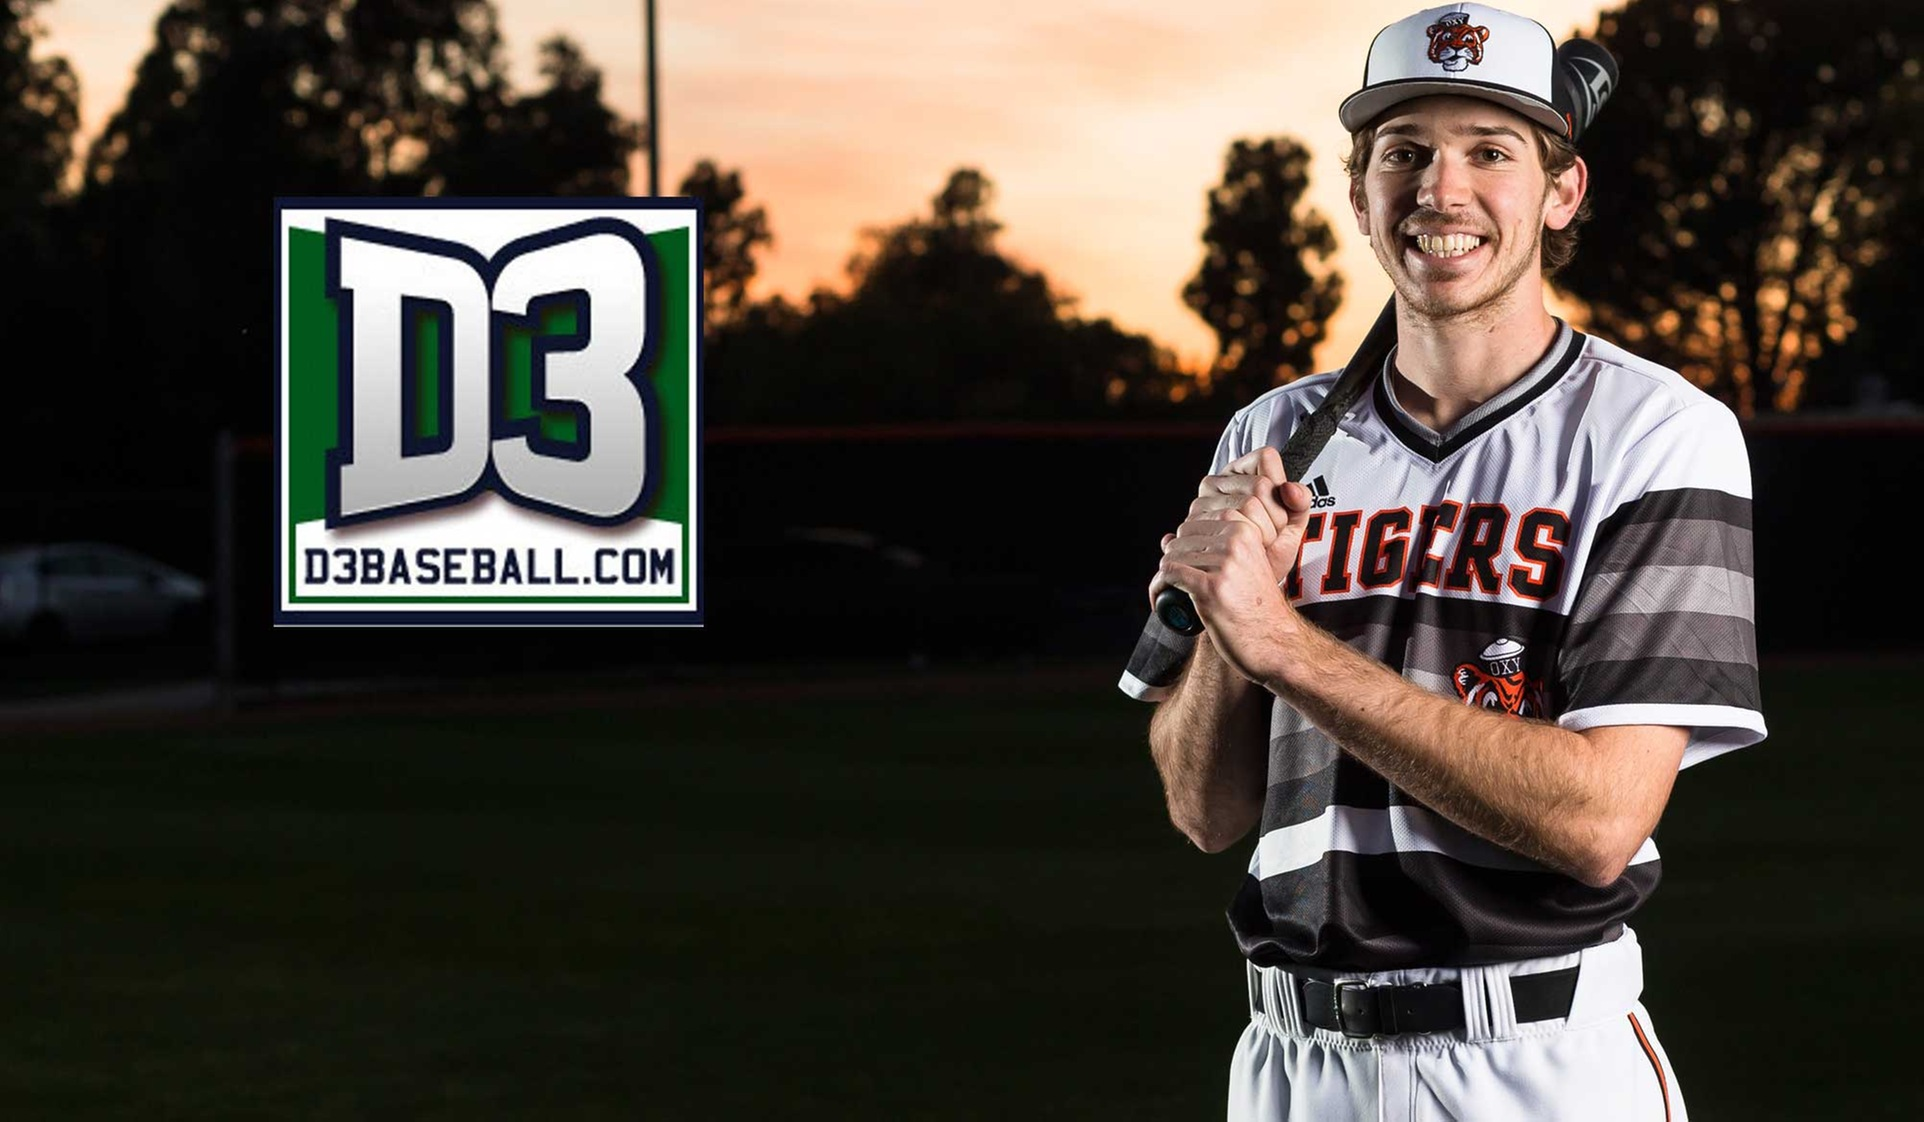 Brancheau Named to D3baseball.com Team of the Week